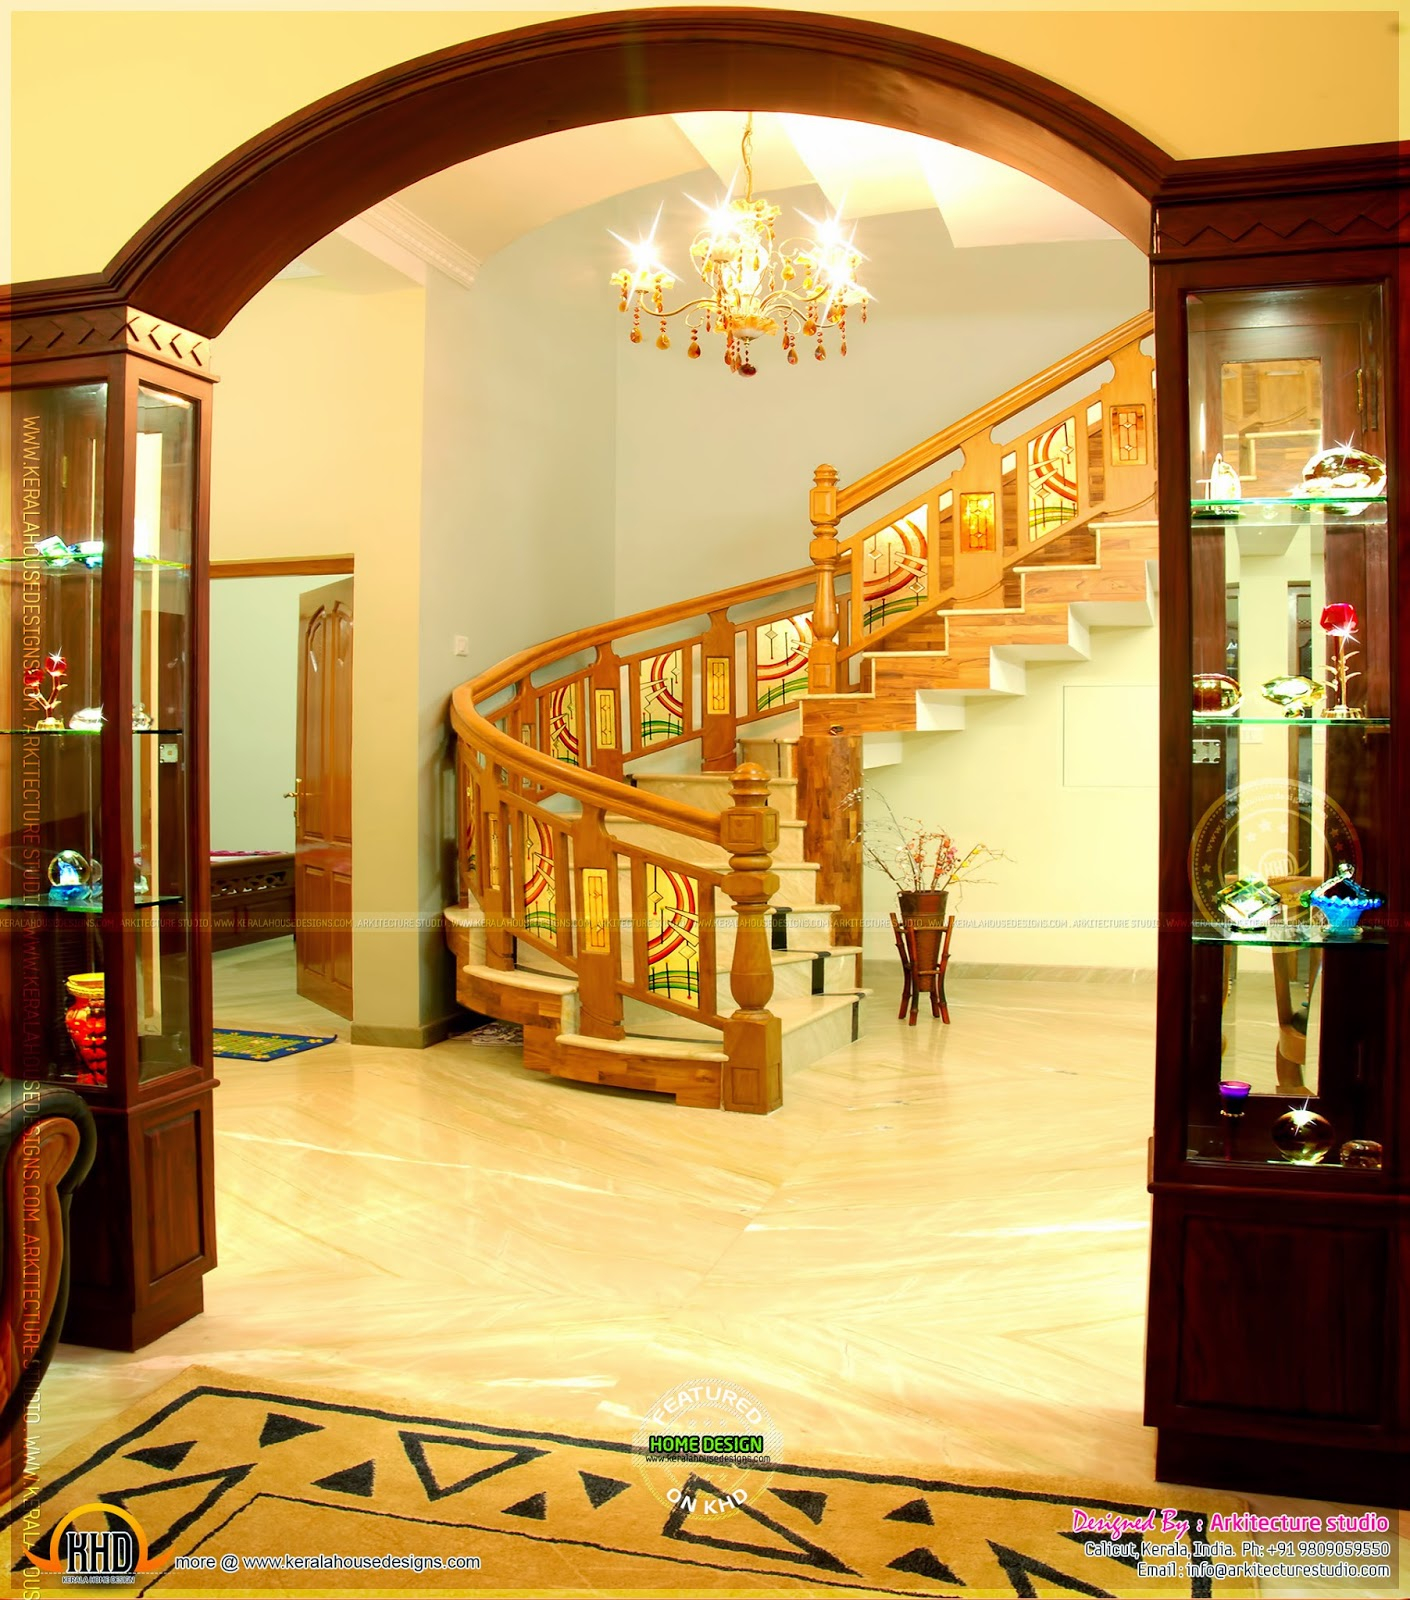 Real house in kerala with interior photos kerala home for Kerala homes interior designs